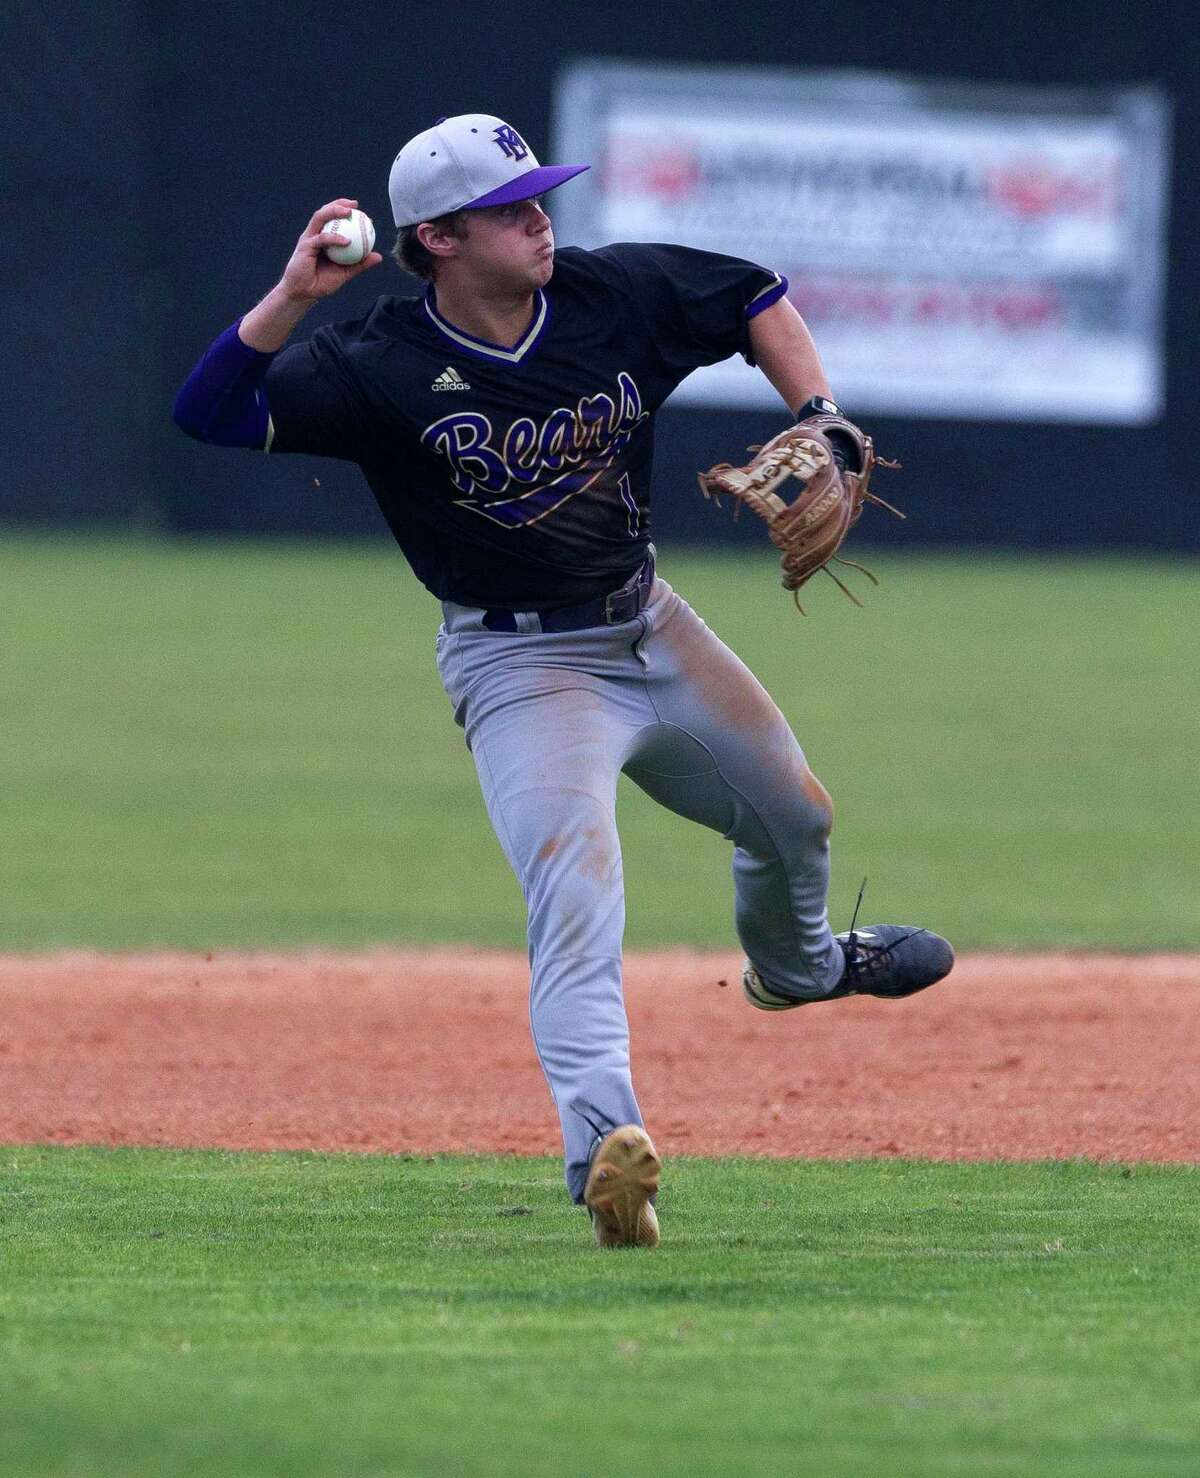 Montgomery second baseman Weston Dean will be one of the top returning players for the Bears this season.